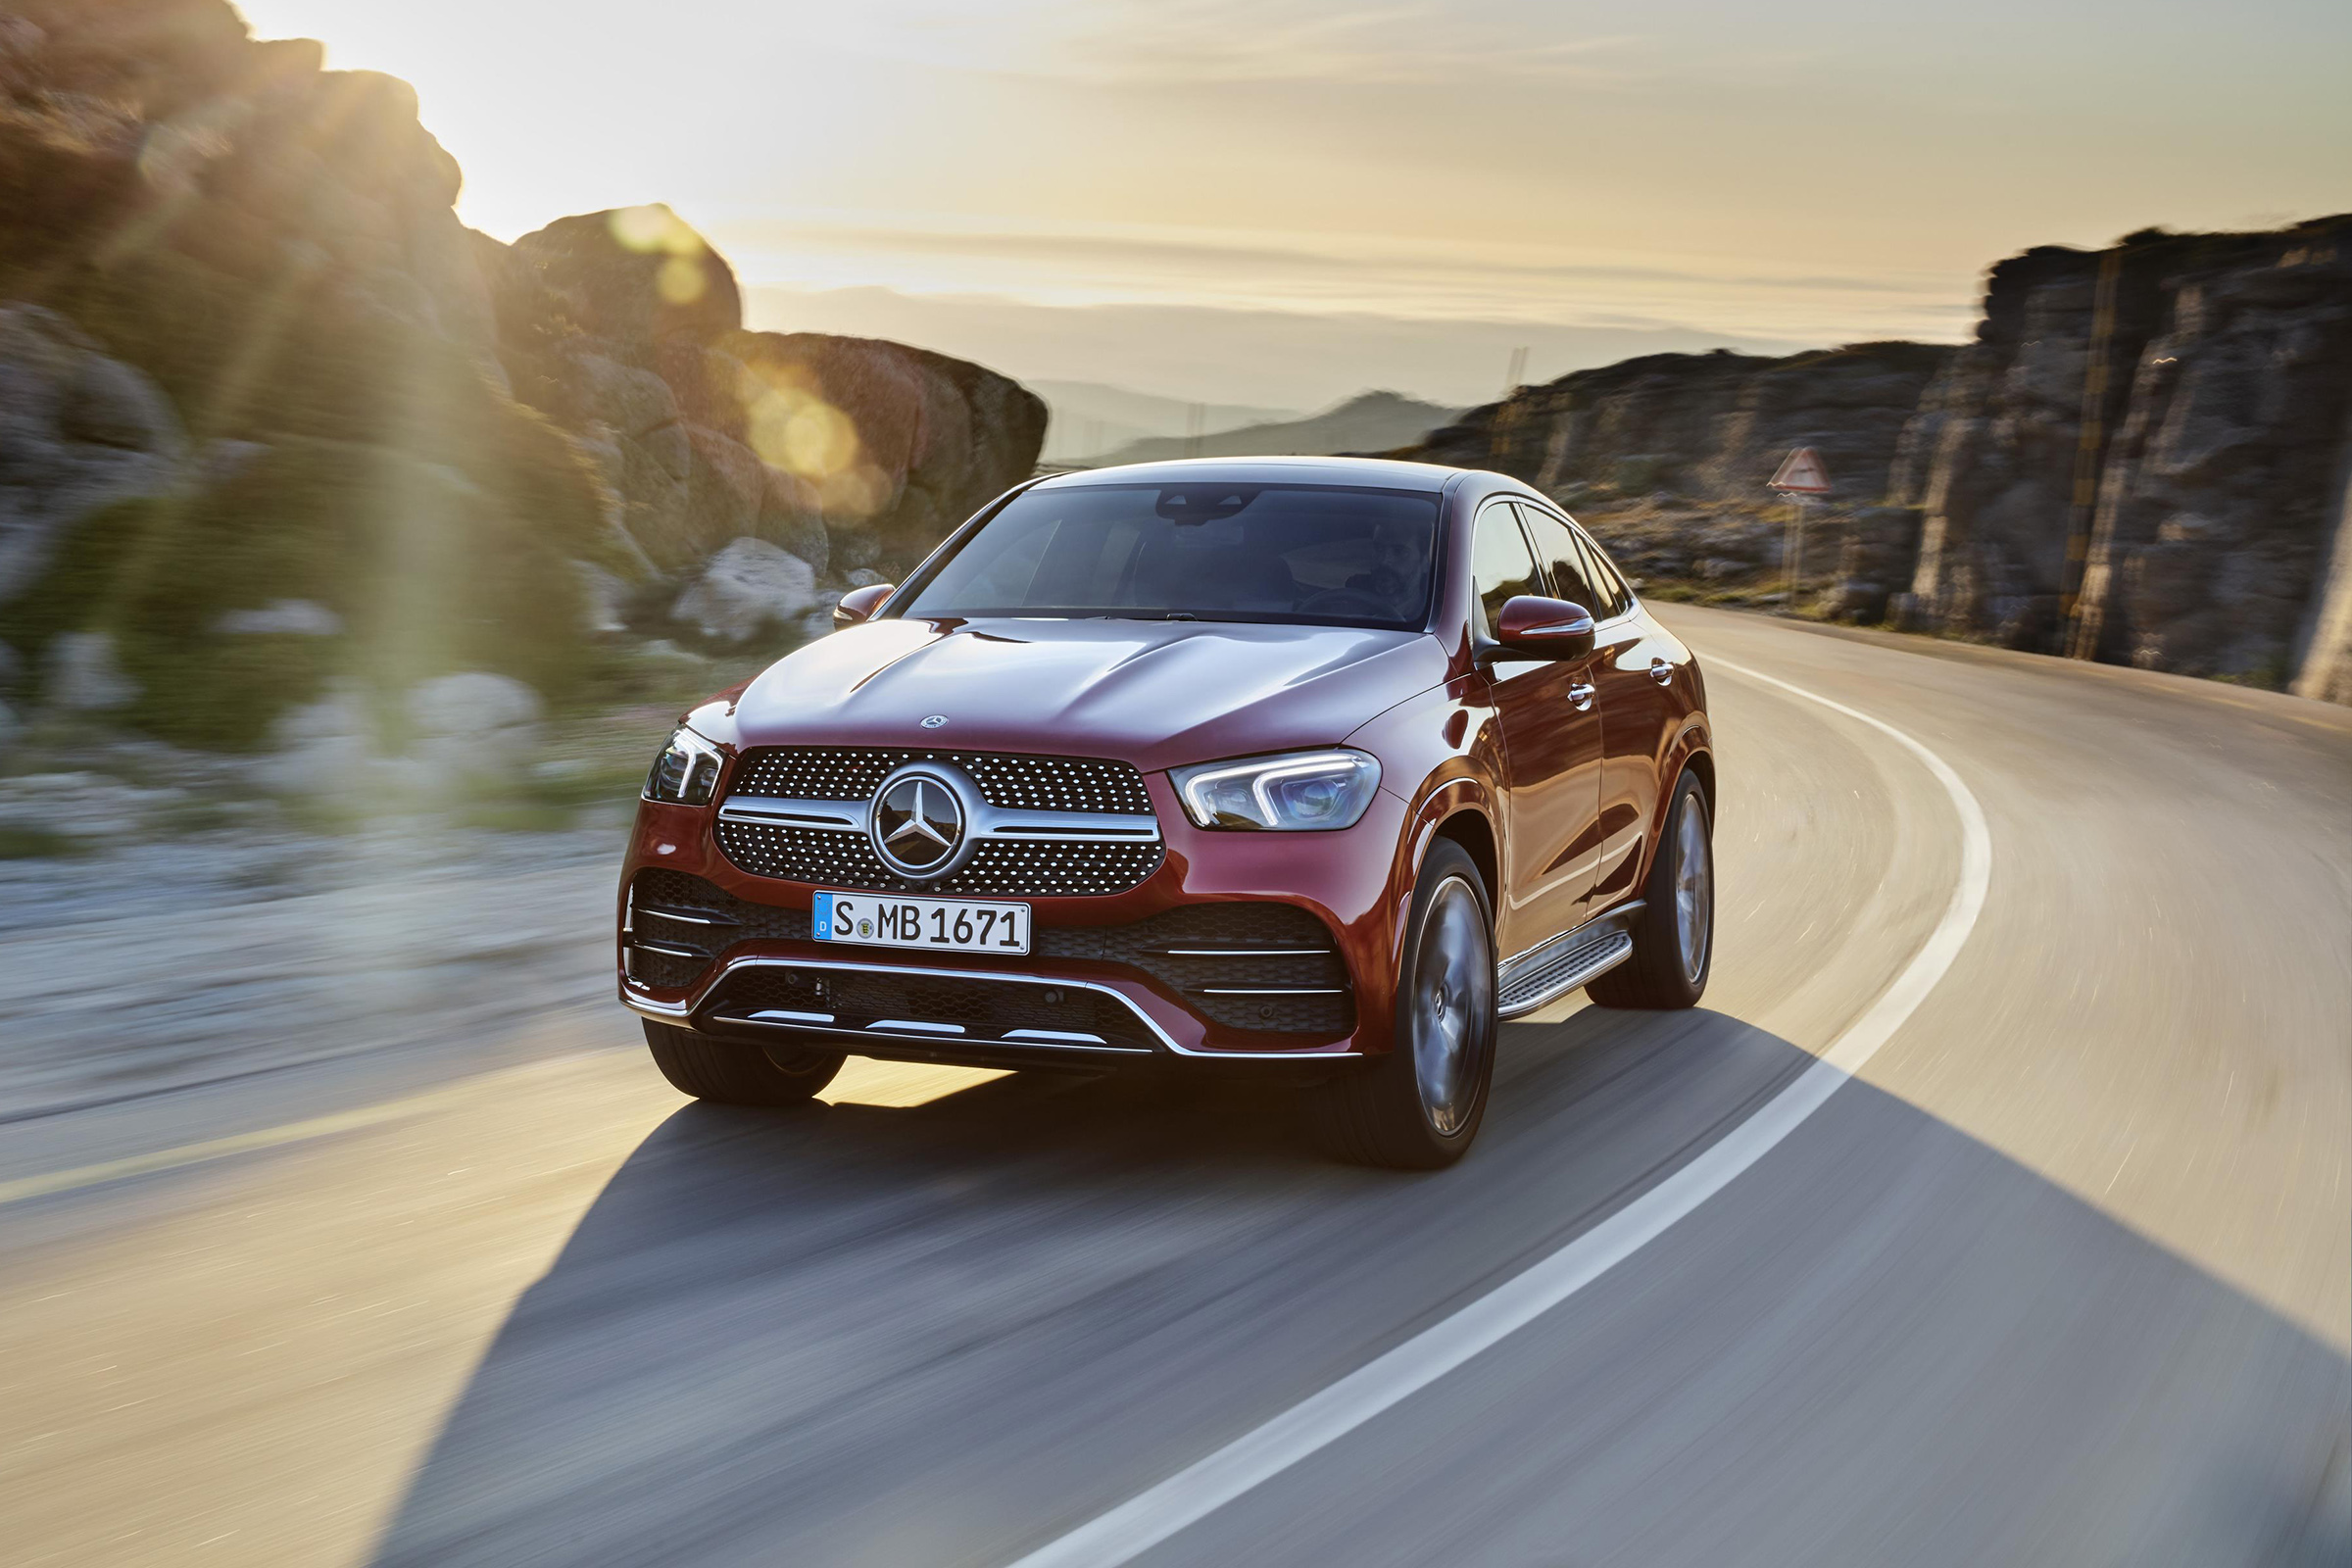 New 2019 Mercedes GLE Coupe: prices, specs and release ...